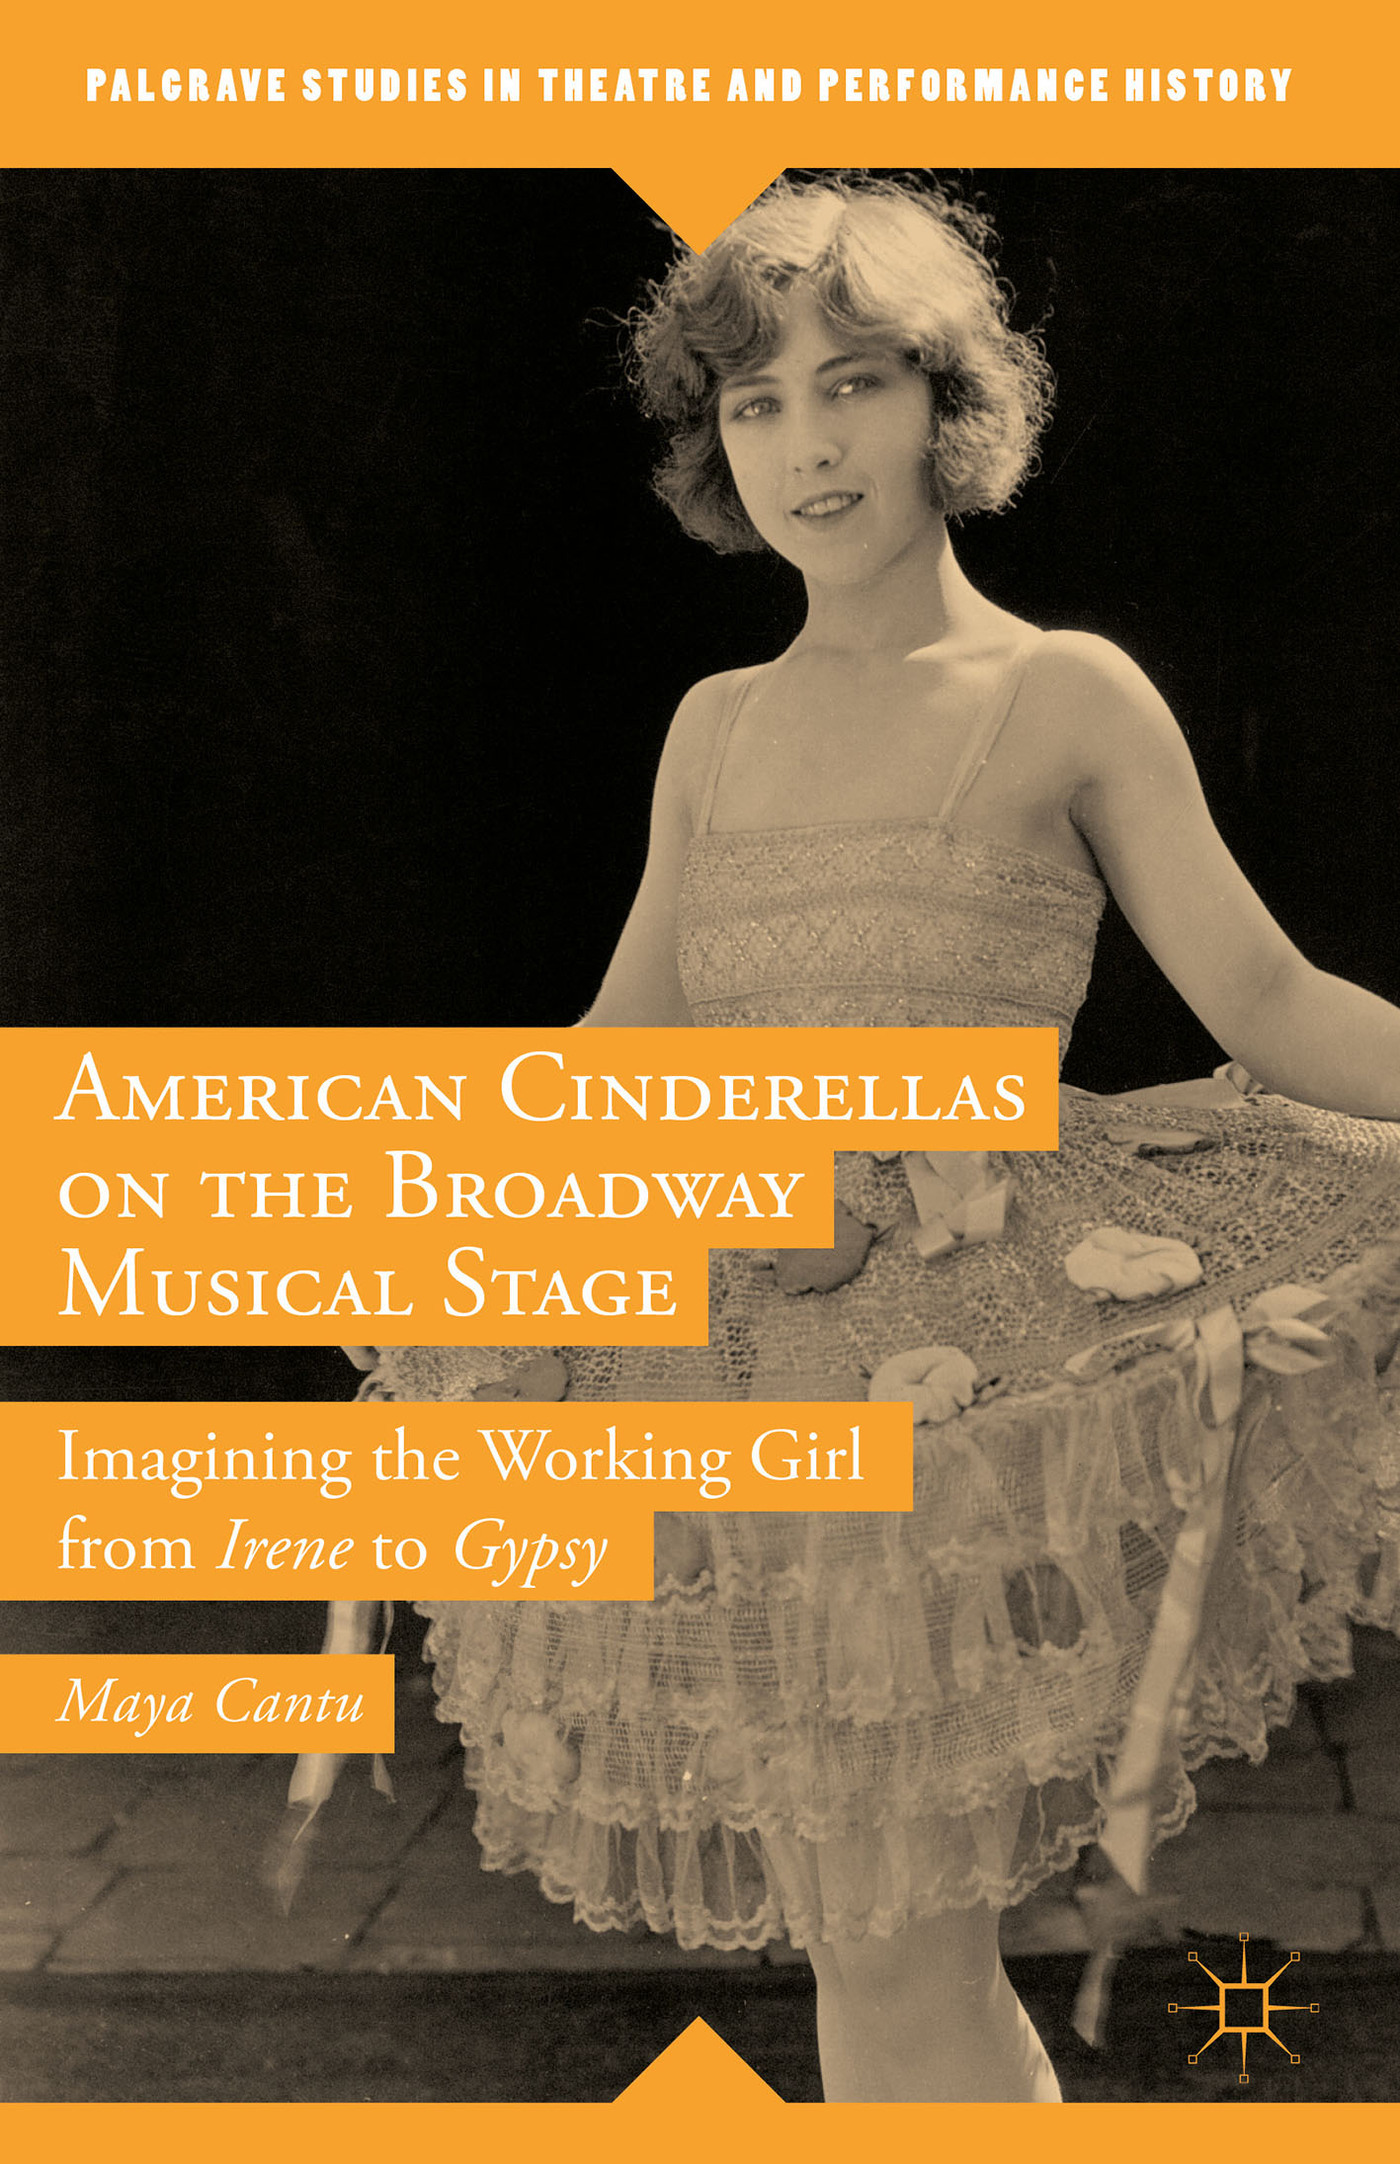 American Cinderellas on the Broadway Musical Stage: Imagining the Working Girl from Irene to Gypsy Maya Cantu